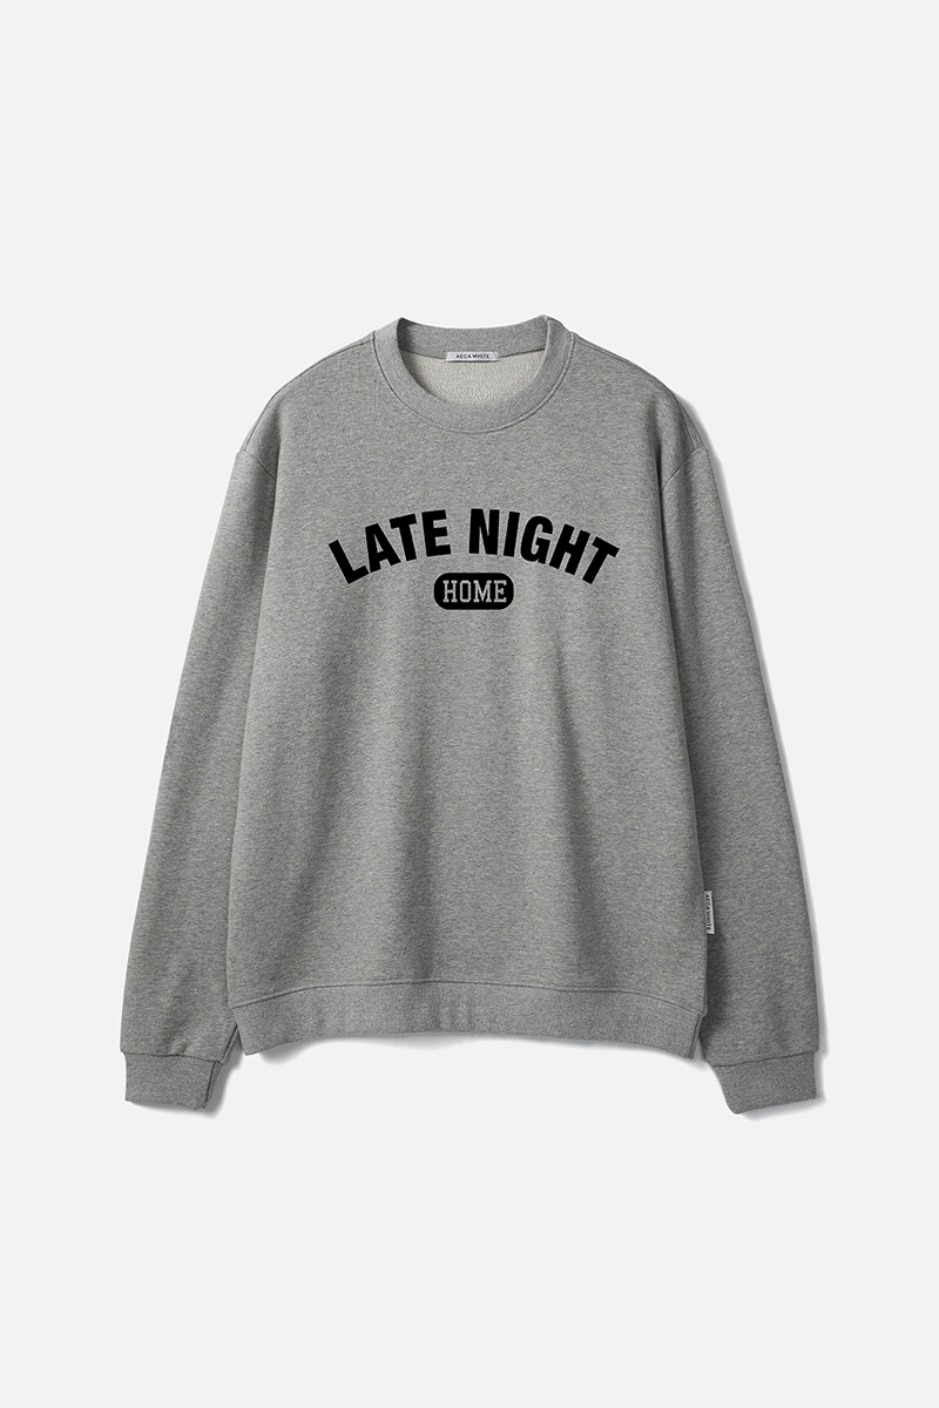 LATE NIGHT SWEATSHIRT-GREY